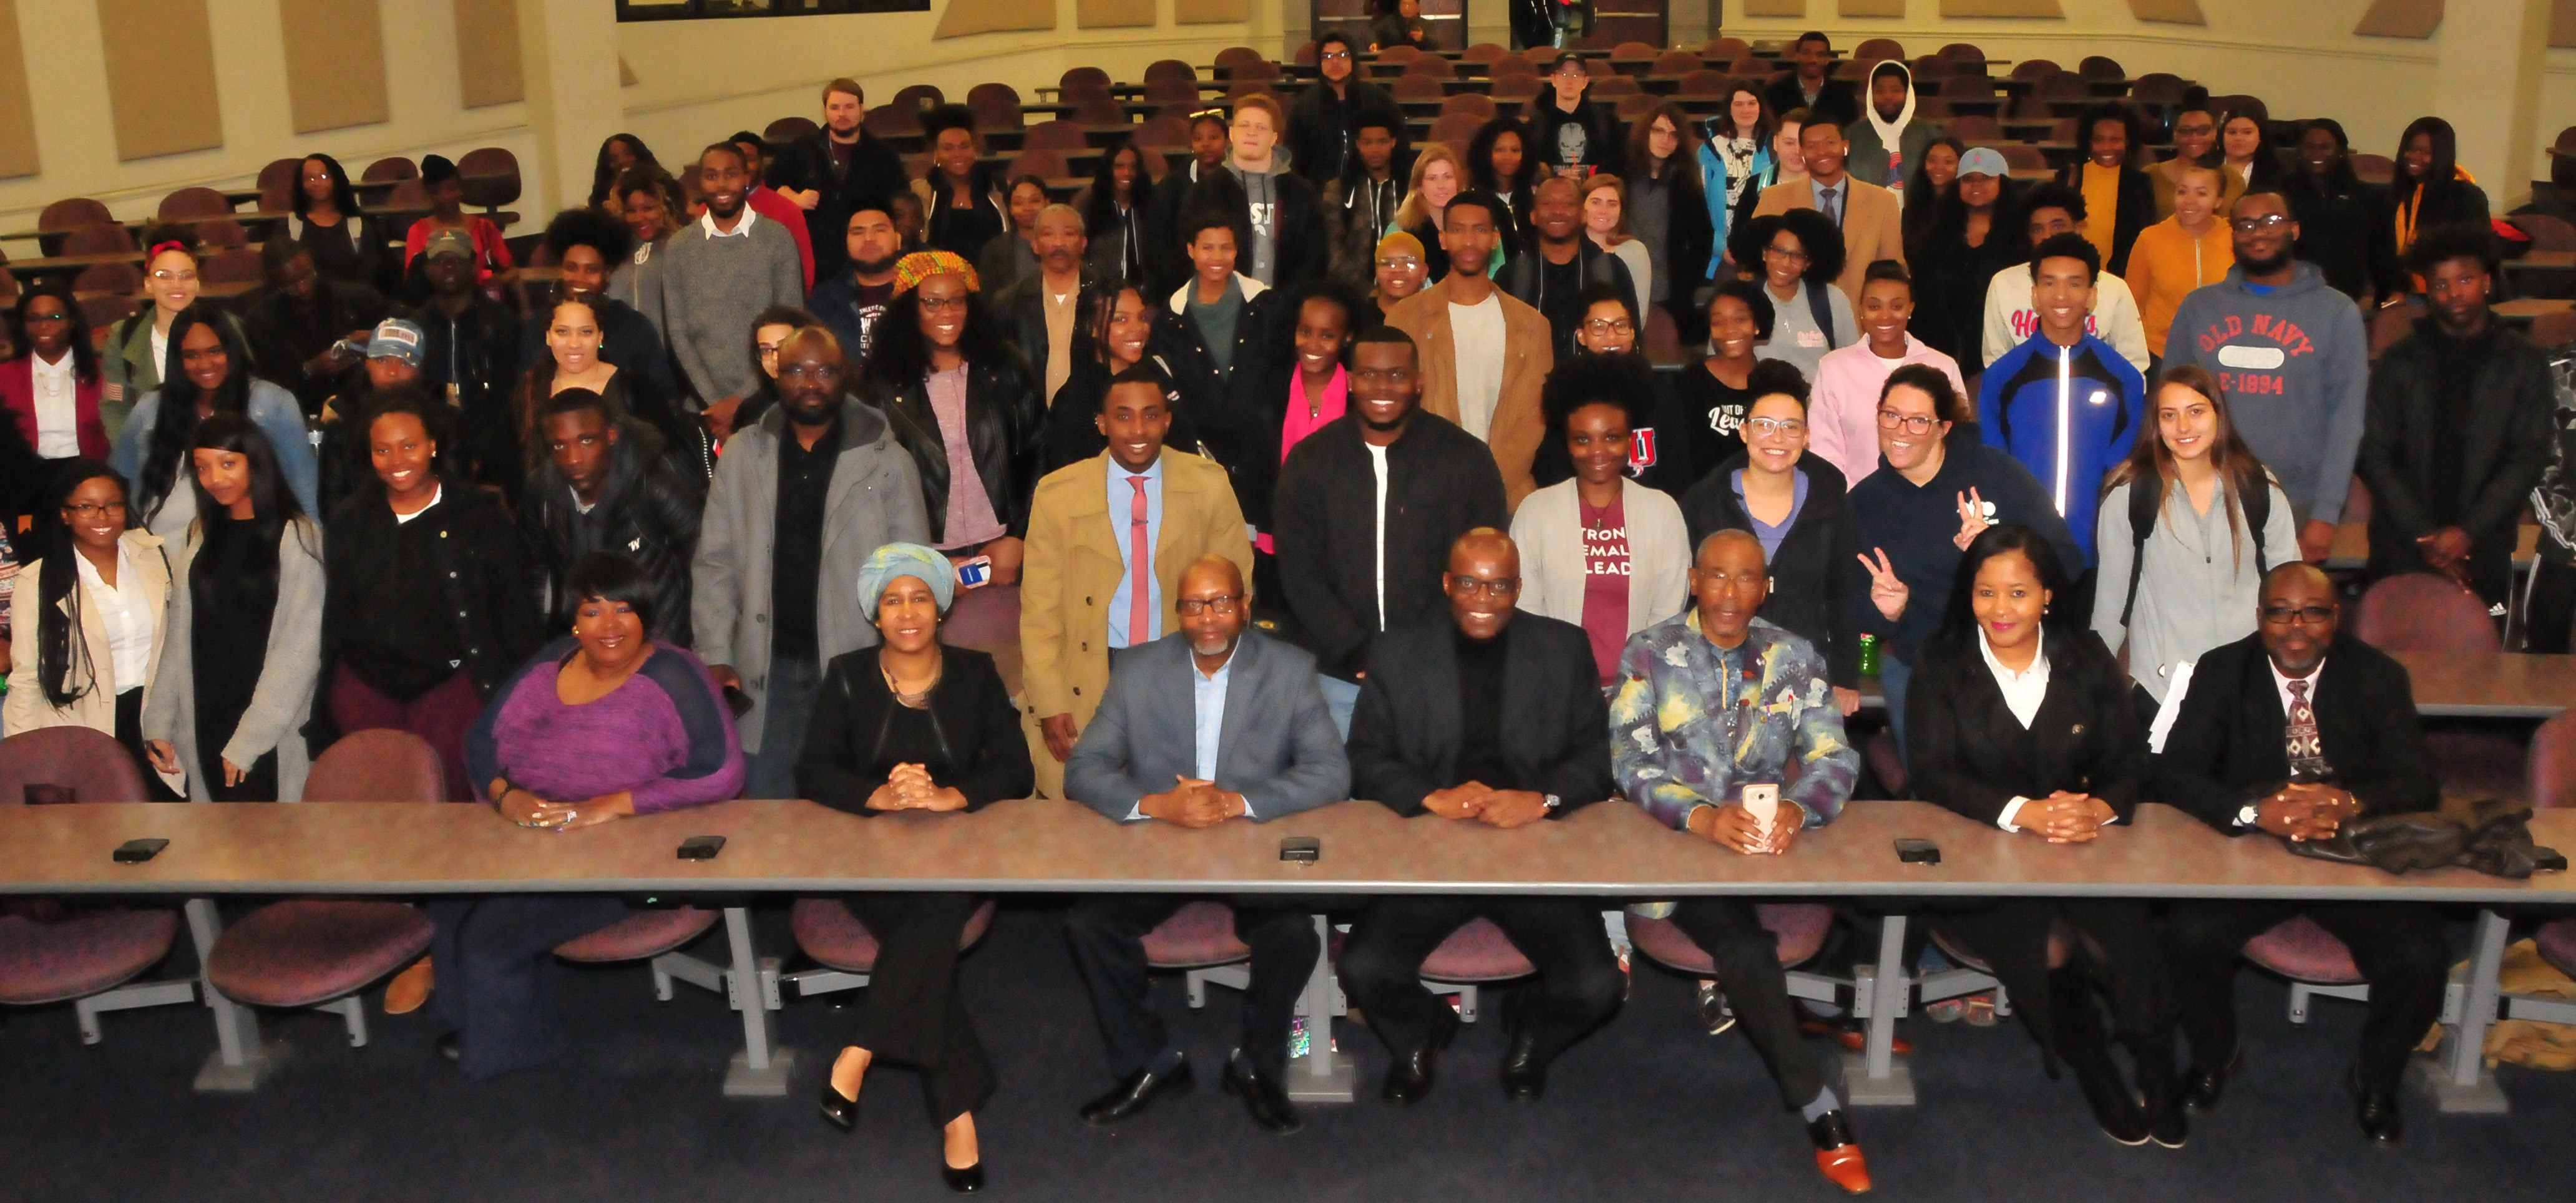 Dr. Eddy Maloka (seated center in dark suit) poses with the students who were his audience.